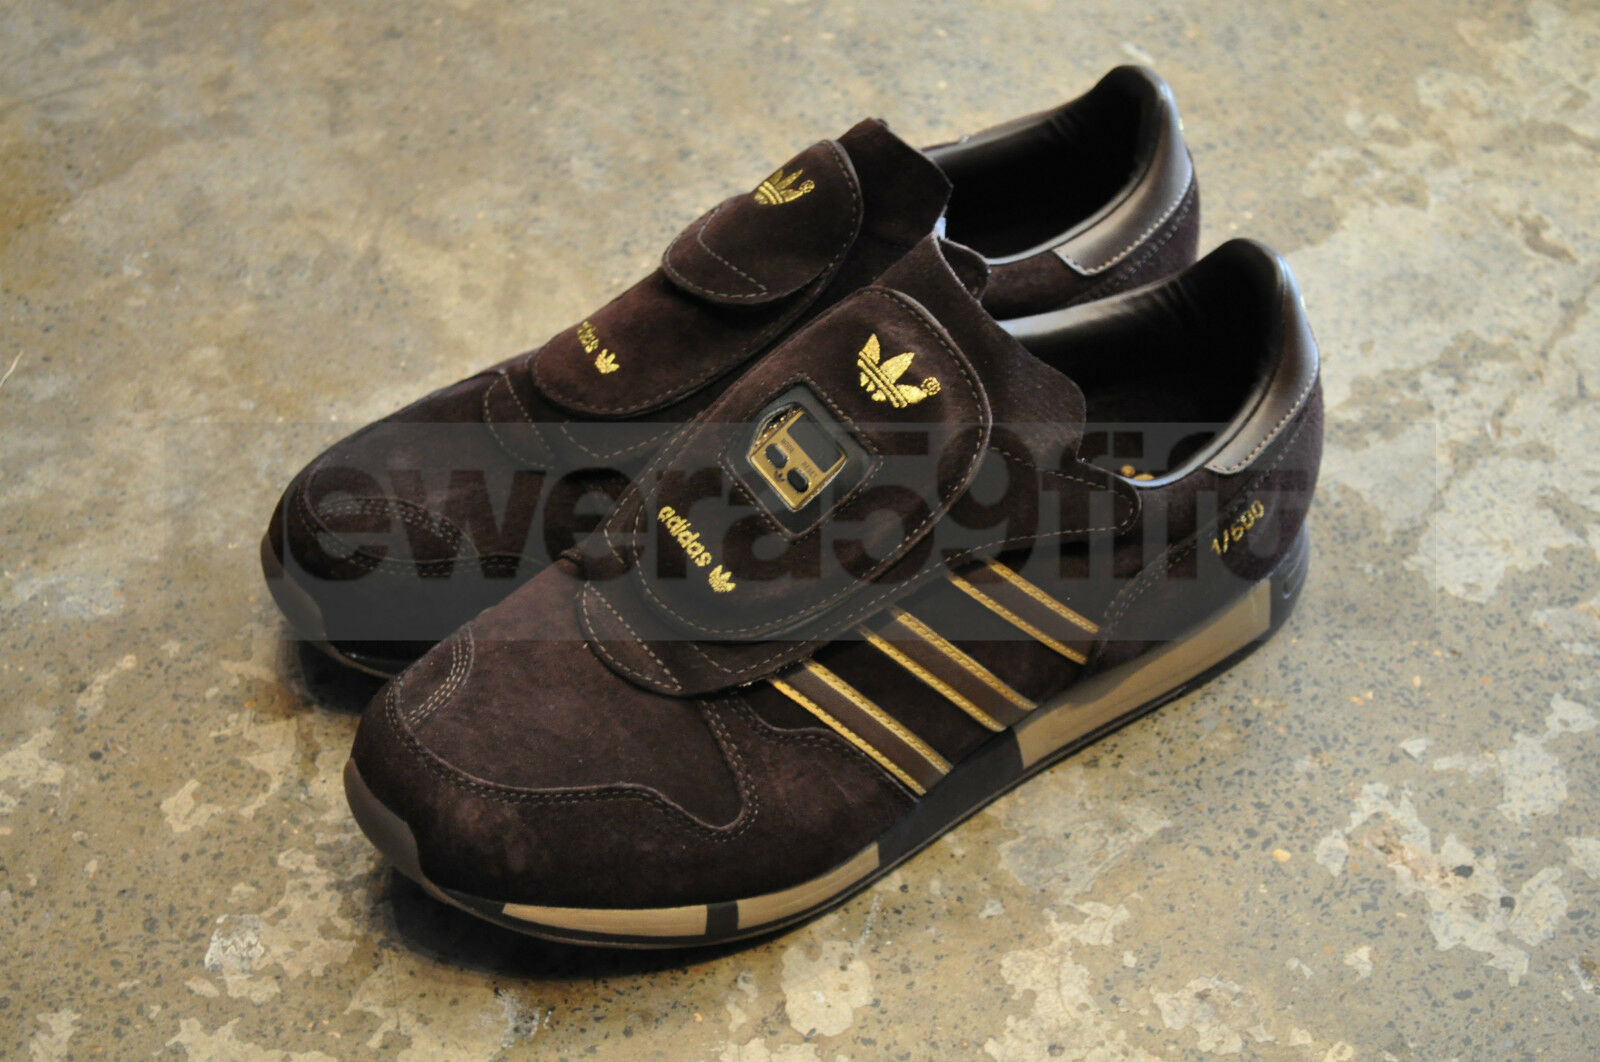 adidas TOP TEN LO UK SOUL POWER 43 1/3 UK LO 9 US 9.5 BNWT 466798 Retro prod. 09/2006 fdae59